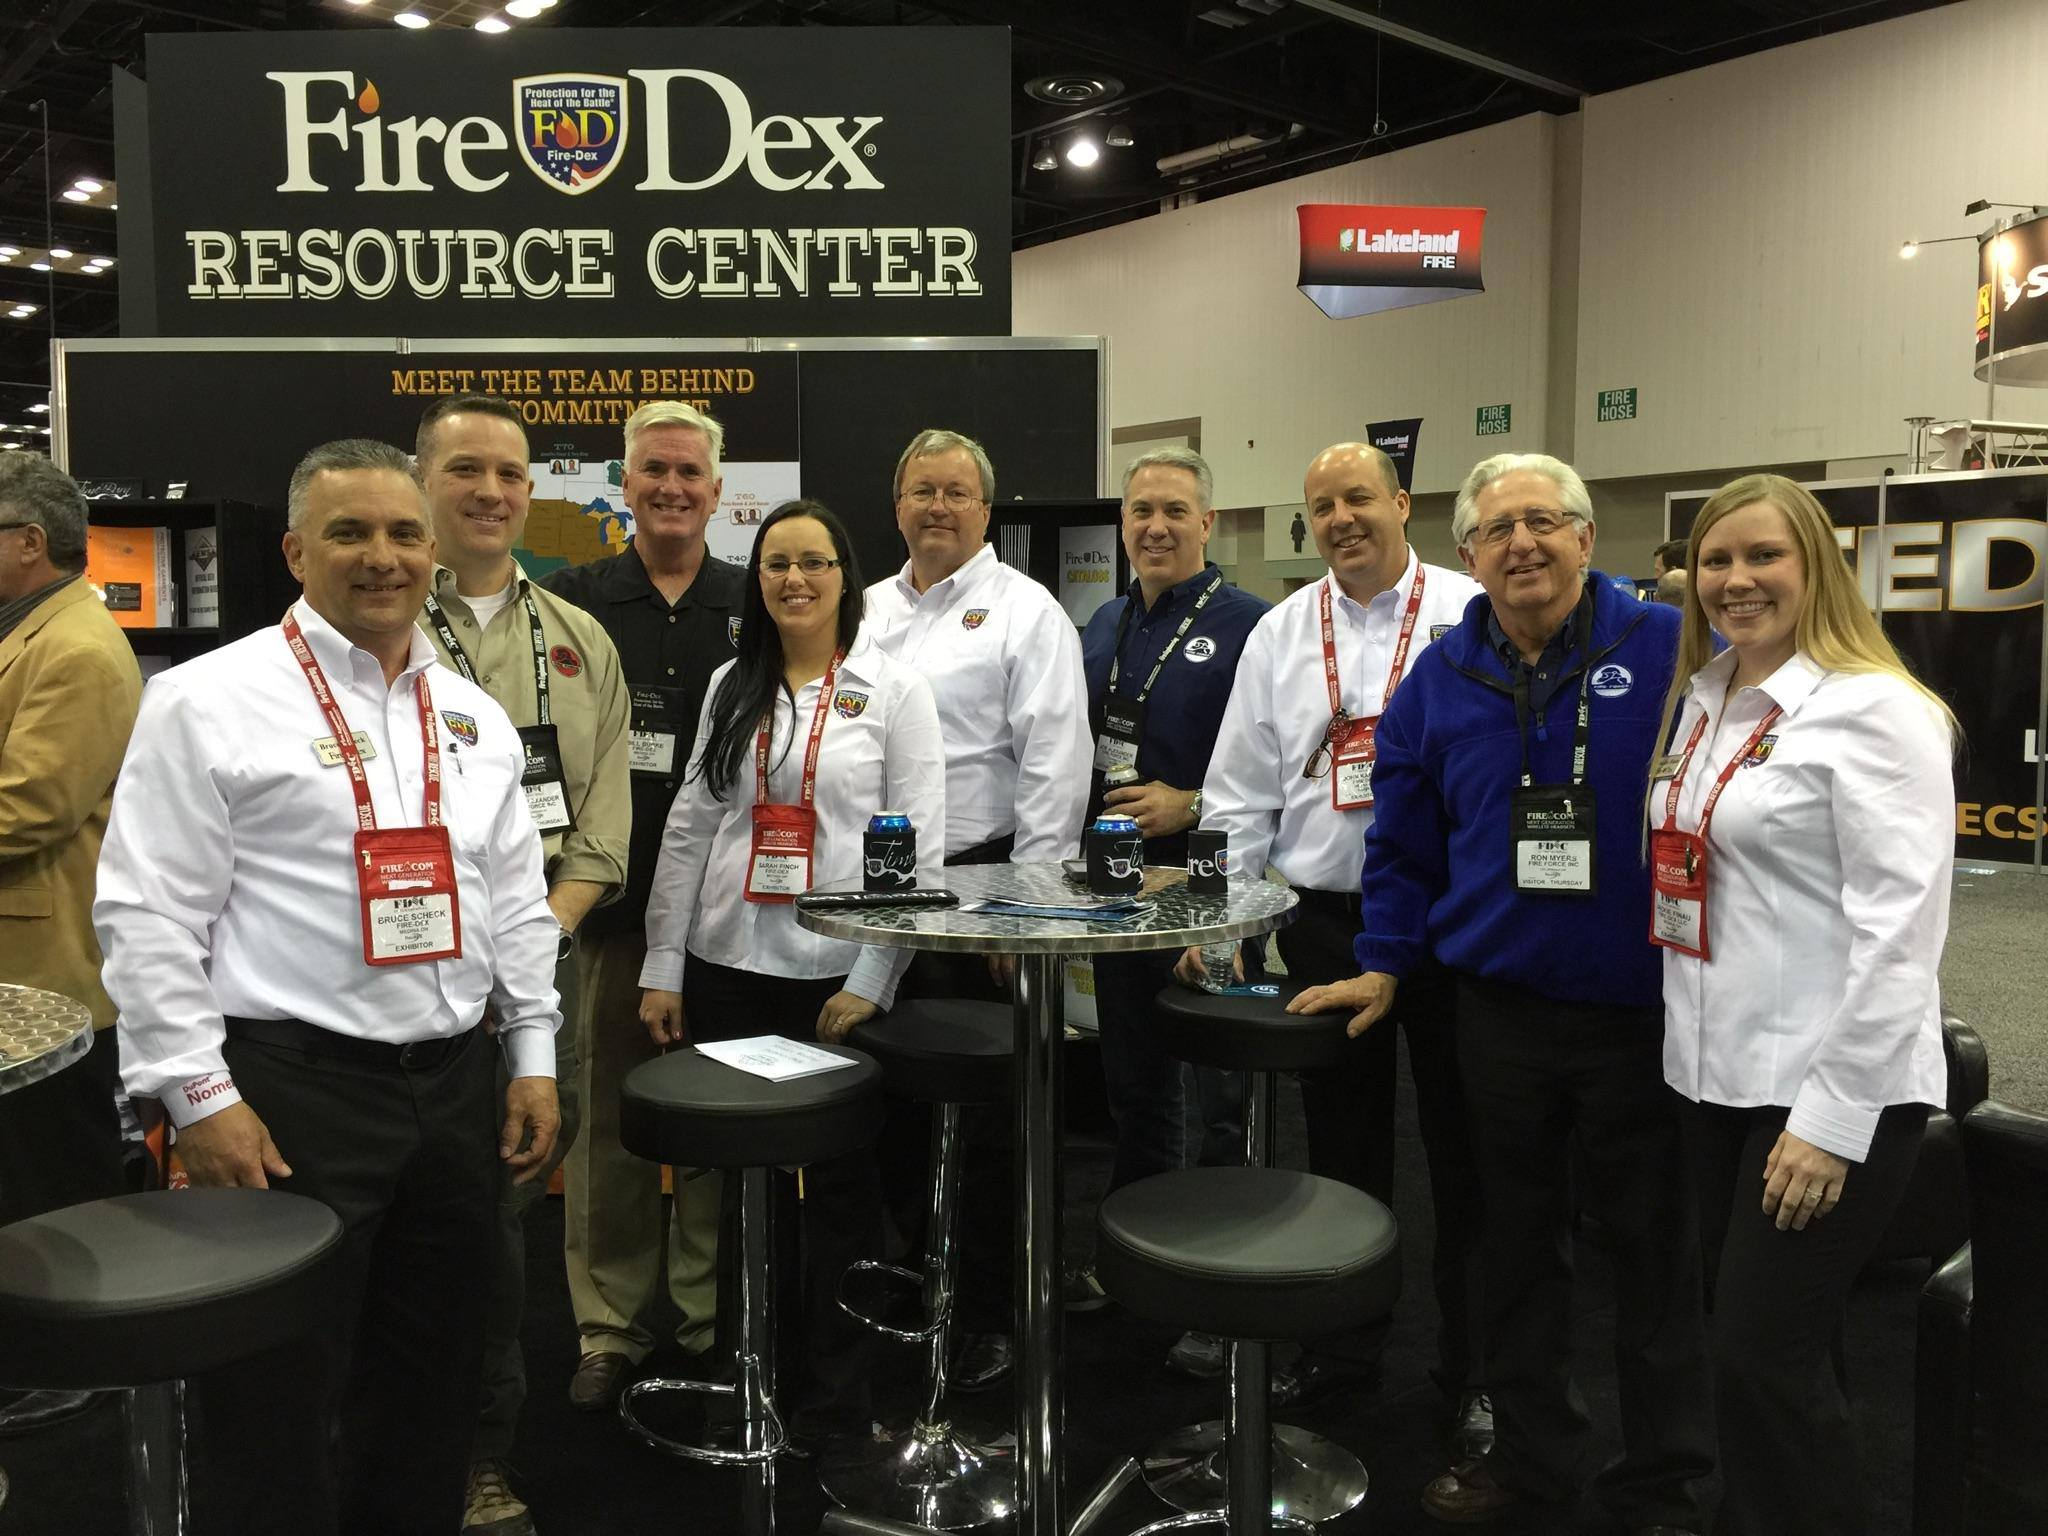 Photo from FDIC 2015. From left to right: Bruce Scheck, Jeff Alexander (Fire Force), Bill Burke, Sarah Finch, Allen Rom, Joe Alexander (Fire Force), John Karban, Ron Myers (Fire Force) and Jackie Finau.